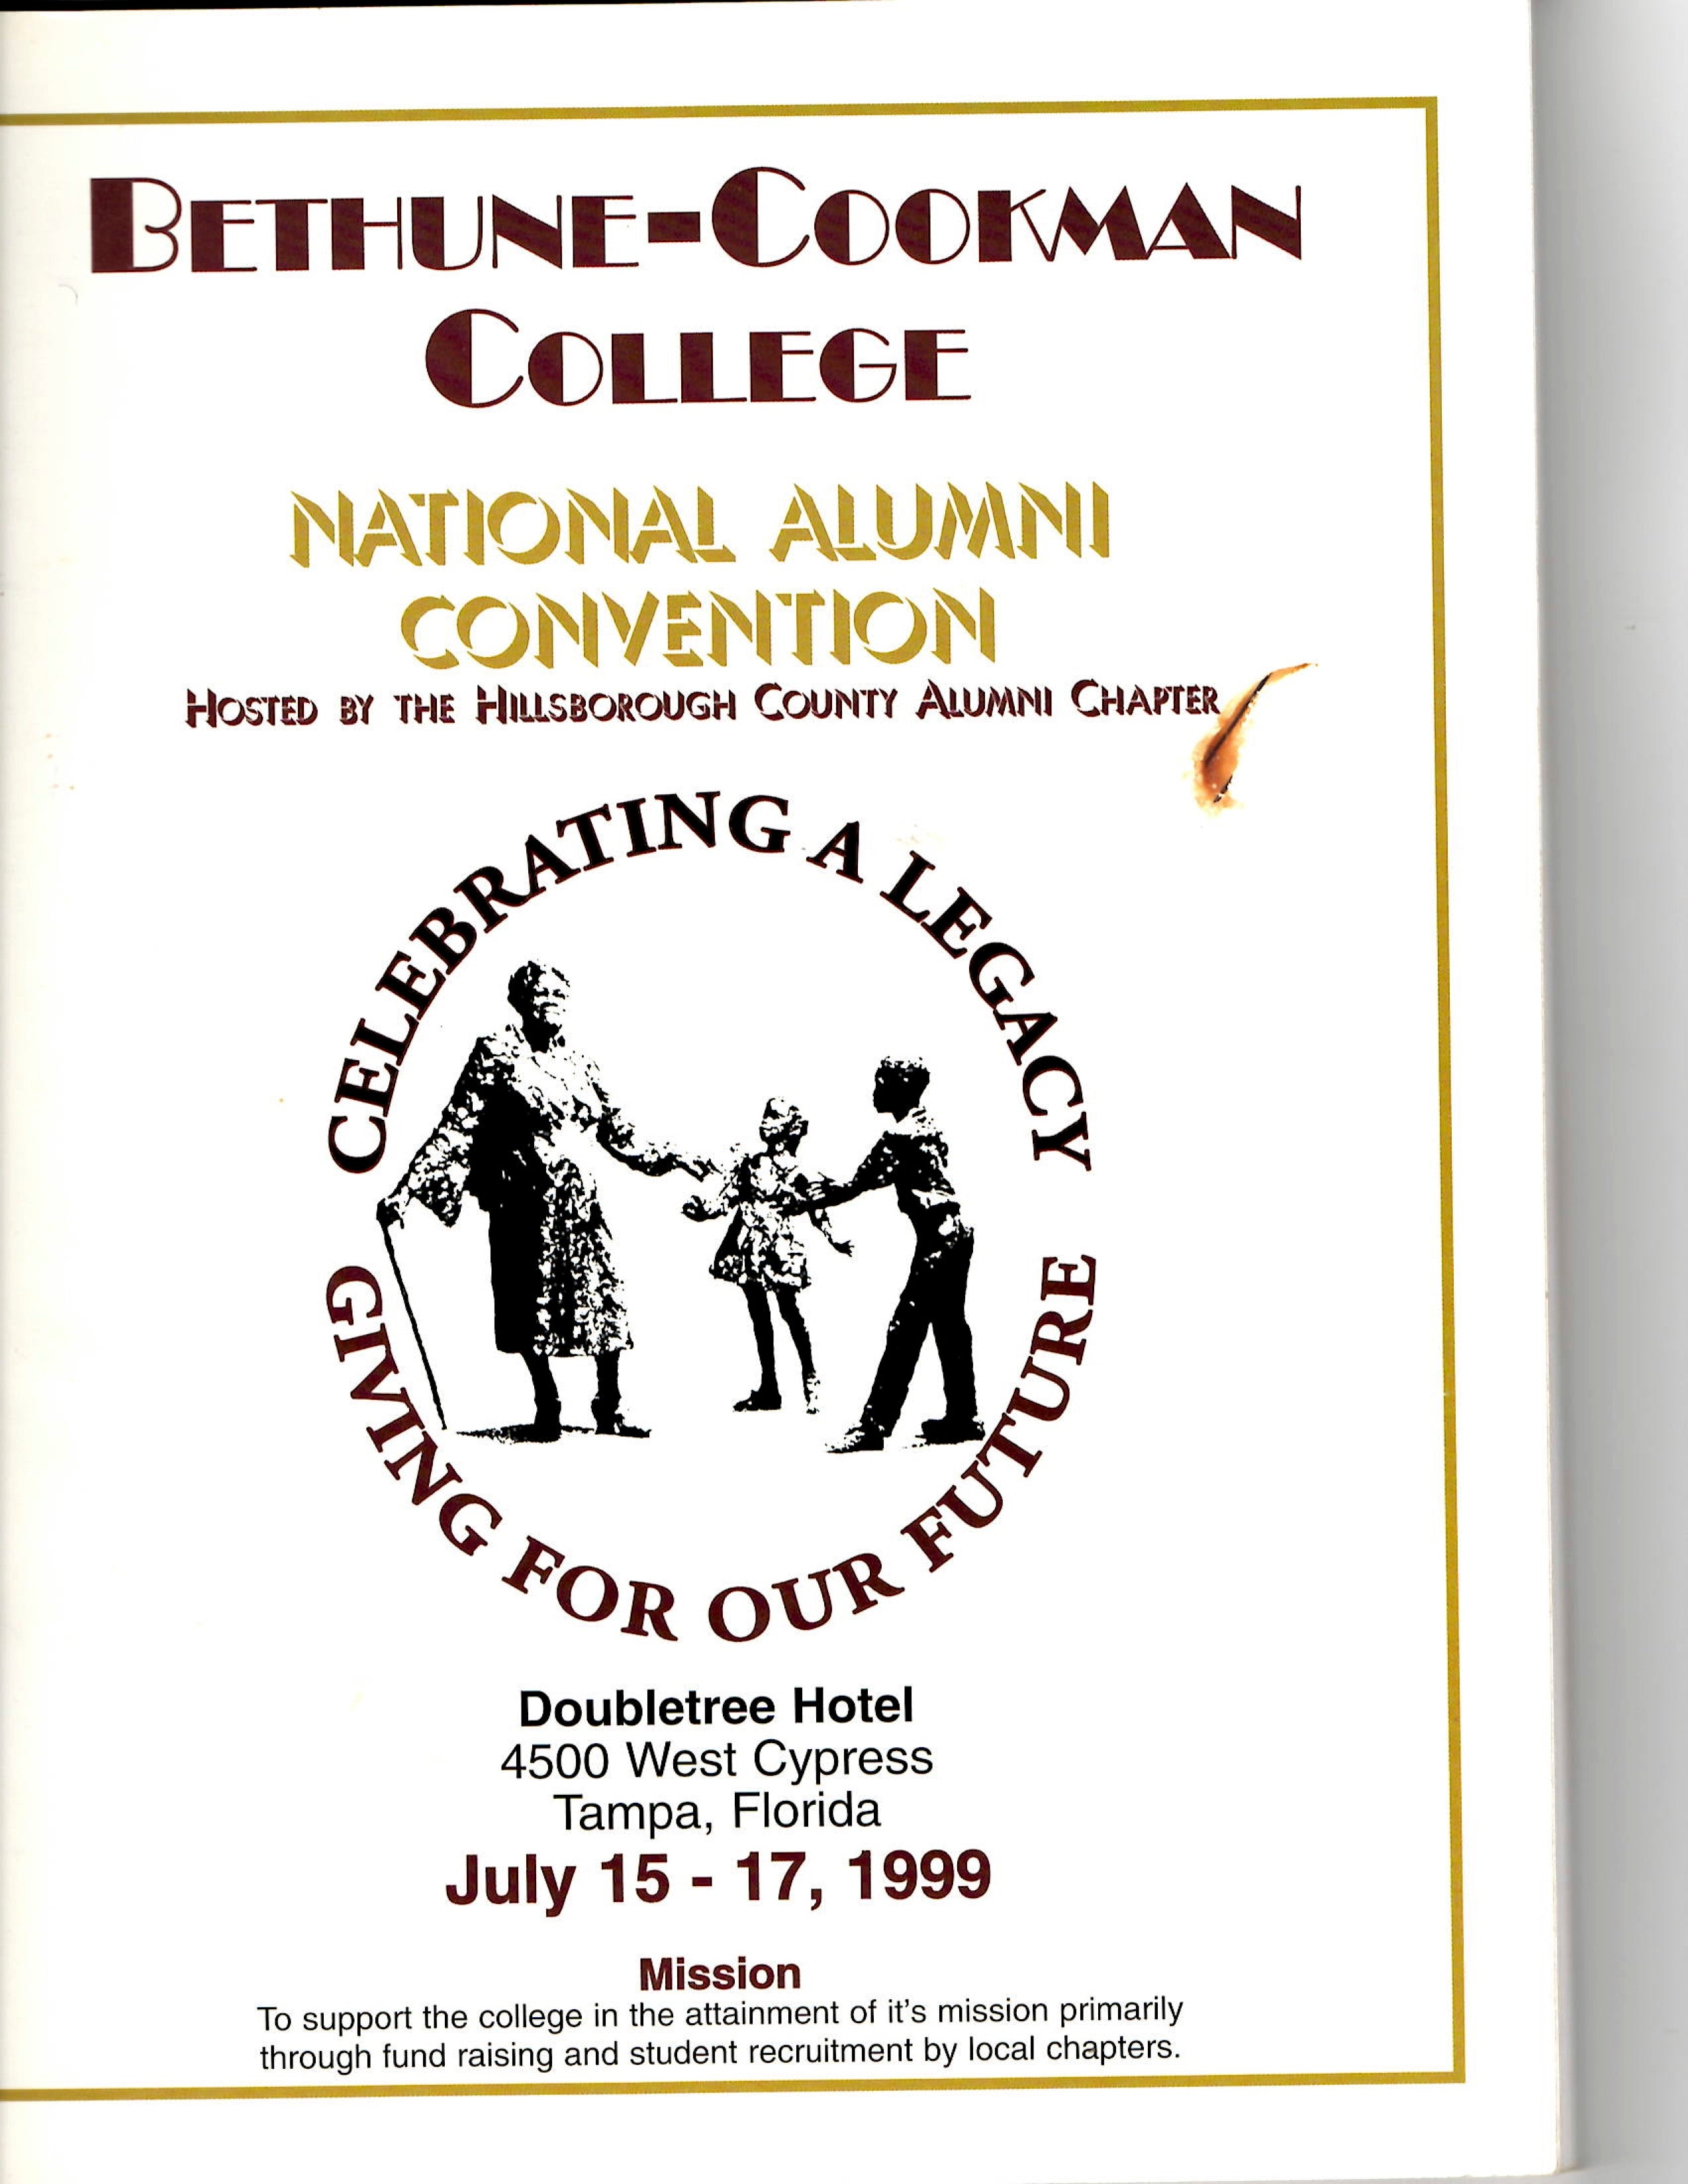 07 15 1999 Bethune Cookman College Alumni Convention